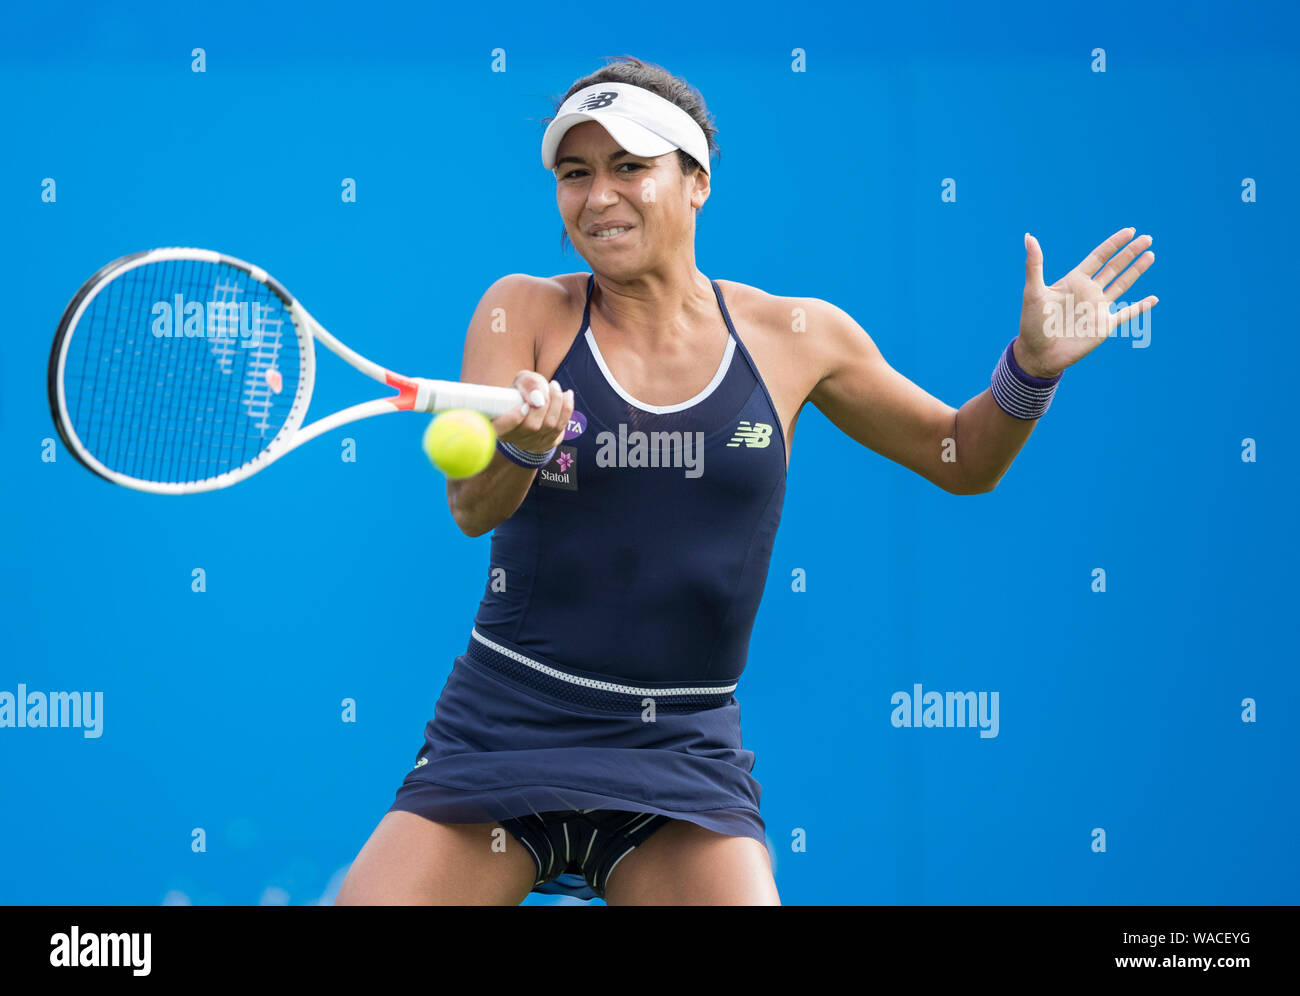 Aegon International 2016, Eastbourne, England -  Heather Watson of GBR playing single handed forehand against Elena Vesnina of Russia. Monday, 20, Jun Stock Photo